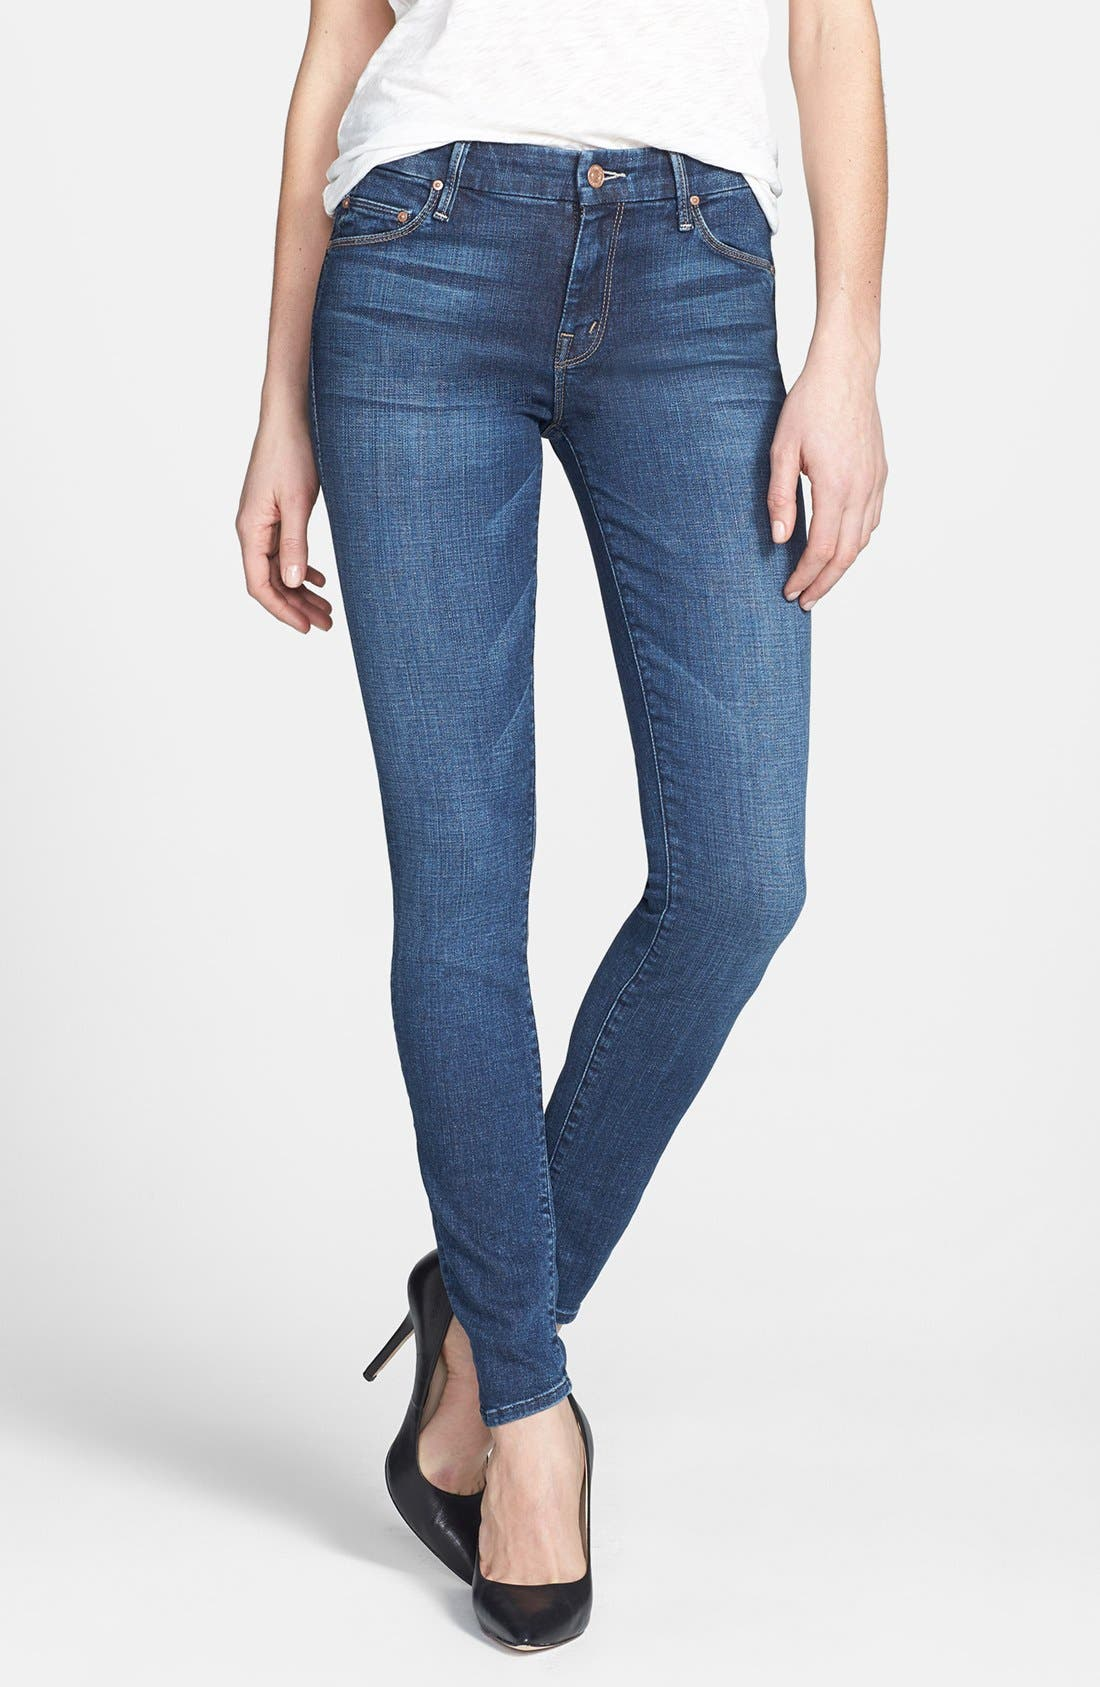 Alternate Image 1 Selected - MOTHER 'The Looker' Skinny Jeans (Slow Ride)